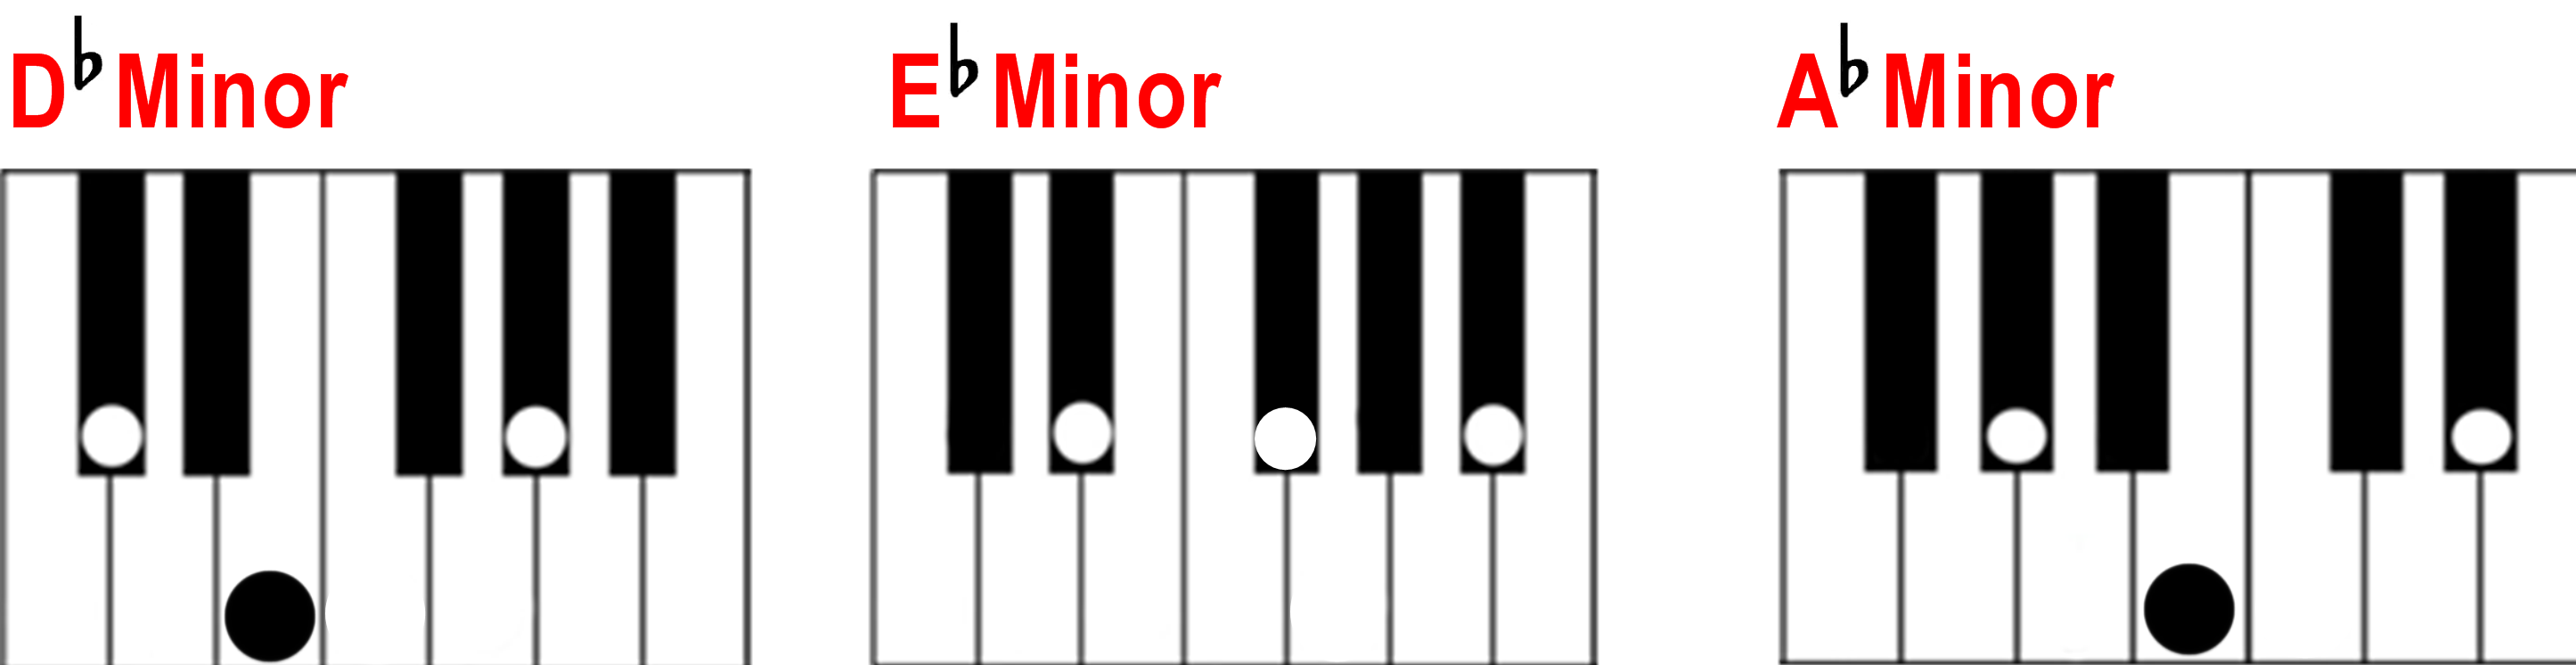 D Flat Chord Piano Finding a minor...